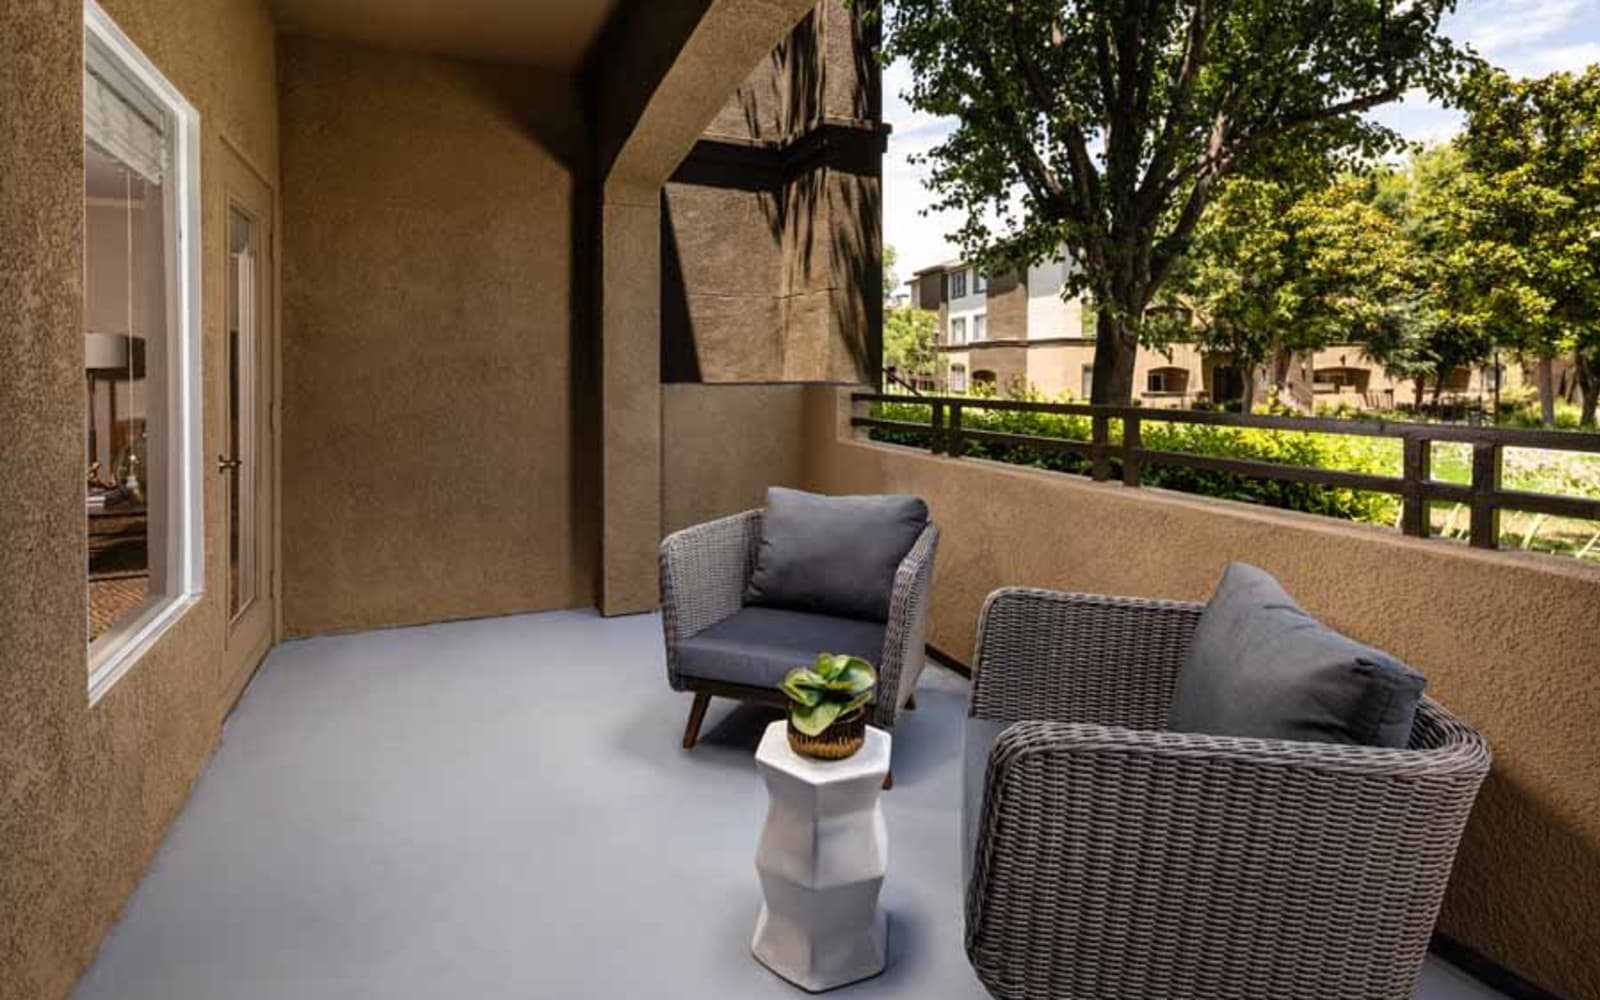 Outdoor seating on an apartment balcony at Castlerock at Sycamore Highlands in Riverside, California